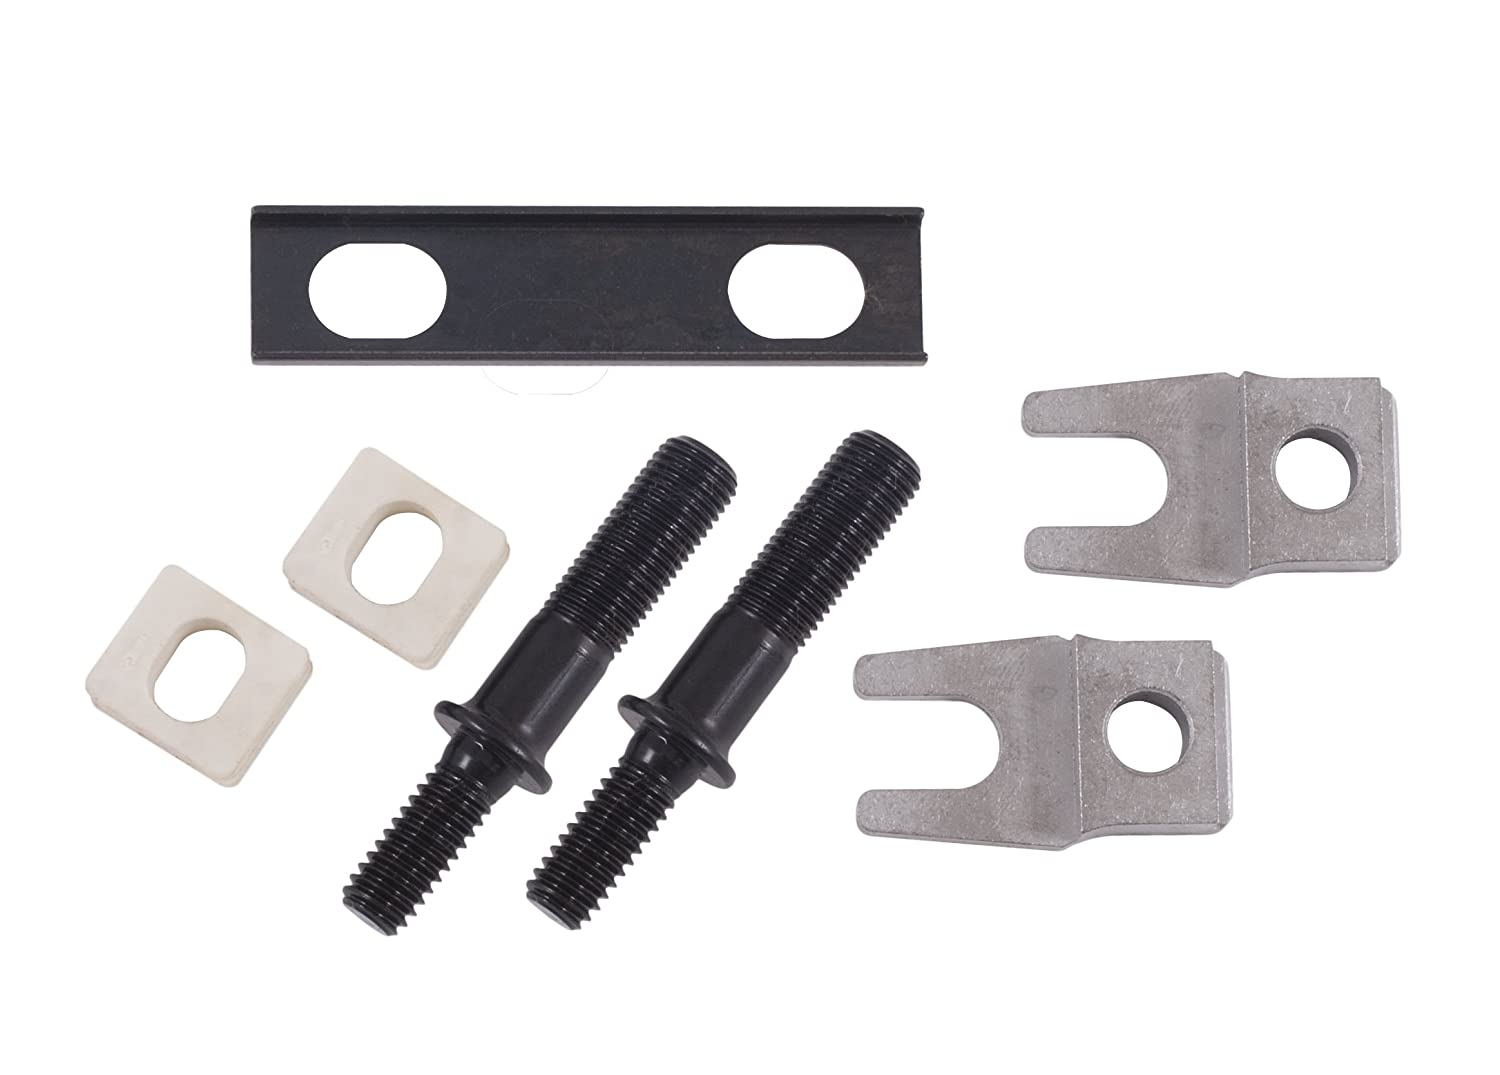 Crane Cams 36655-16 3/8' Rocker Arm Guideplate Conversion Kit for Ford V8, (Set of 16)